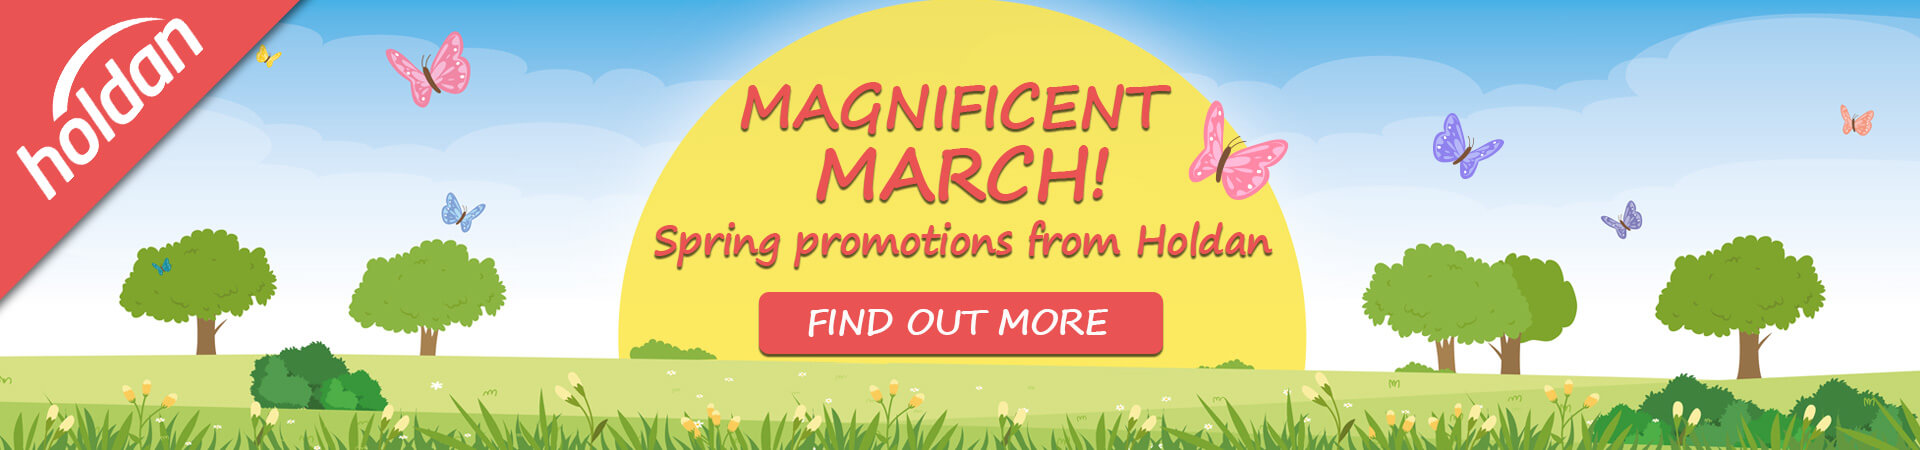 Magnificent March Offers